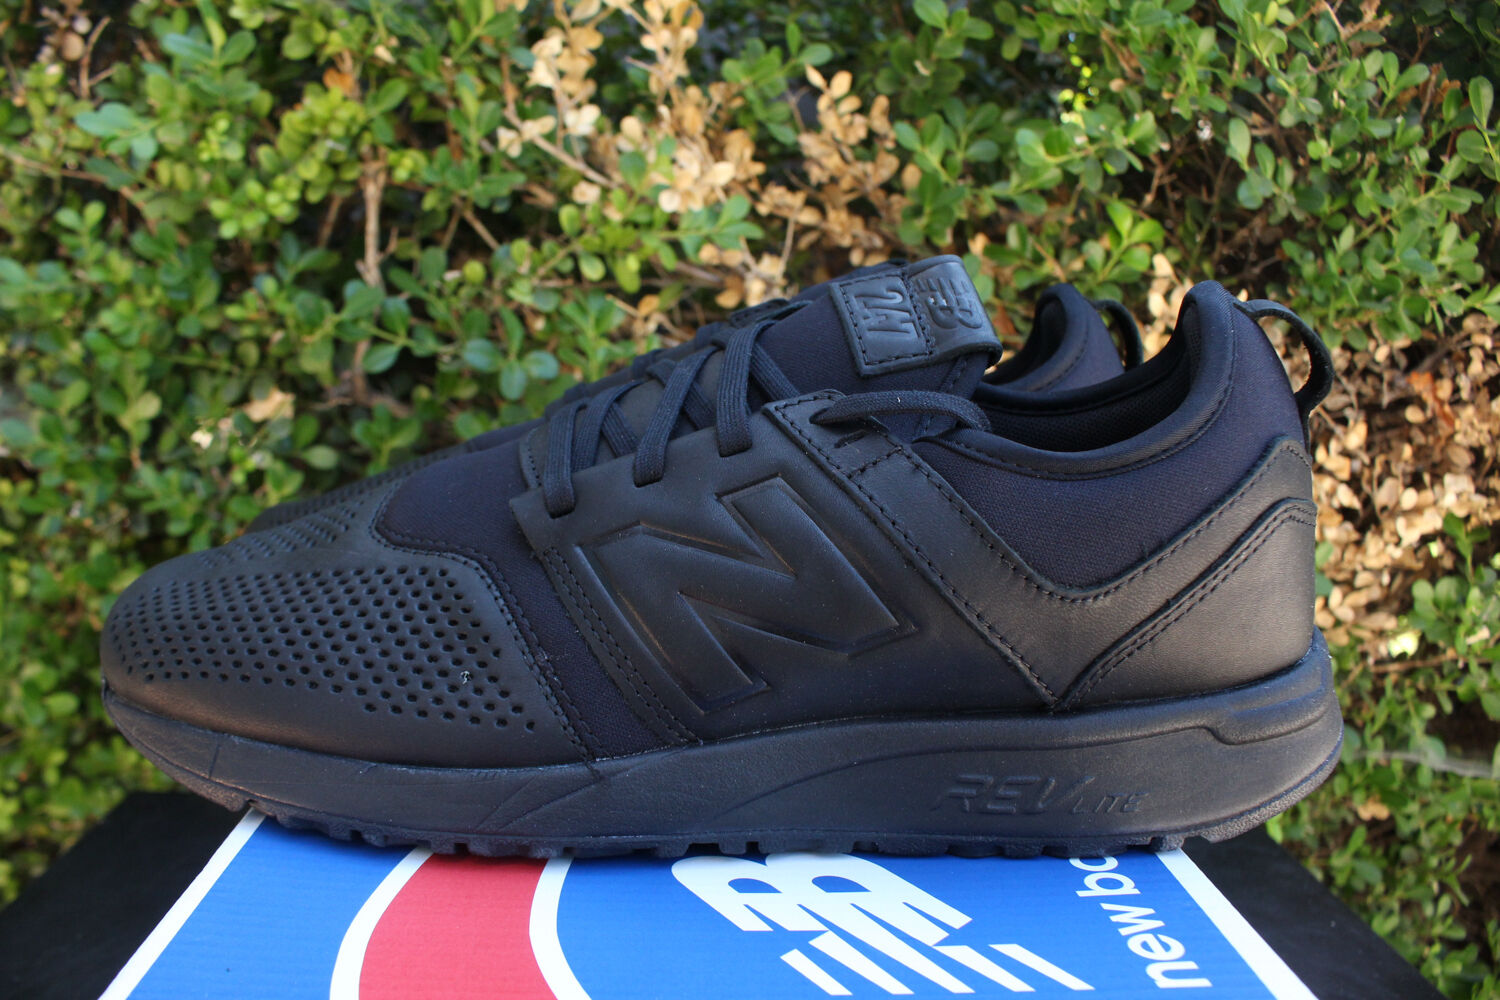 NEW BALANCE 247 SZ 9.5 TRIPLE BLACK LEATHER RUNNING SHOE MRL247LK